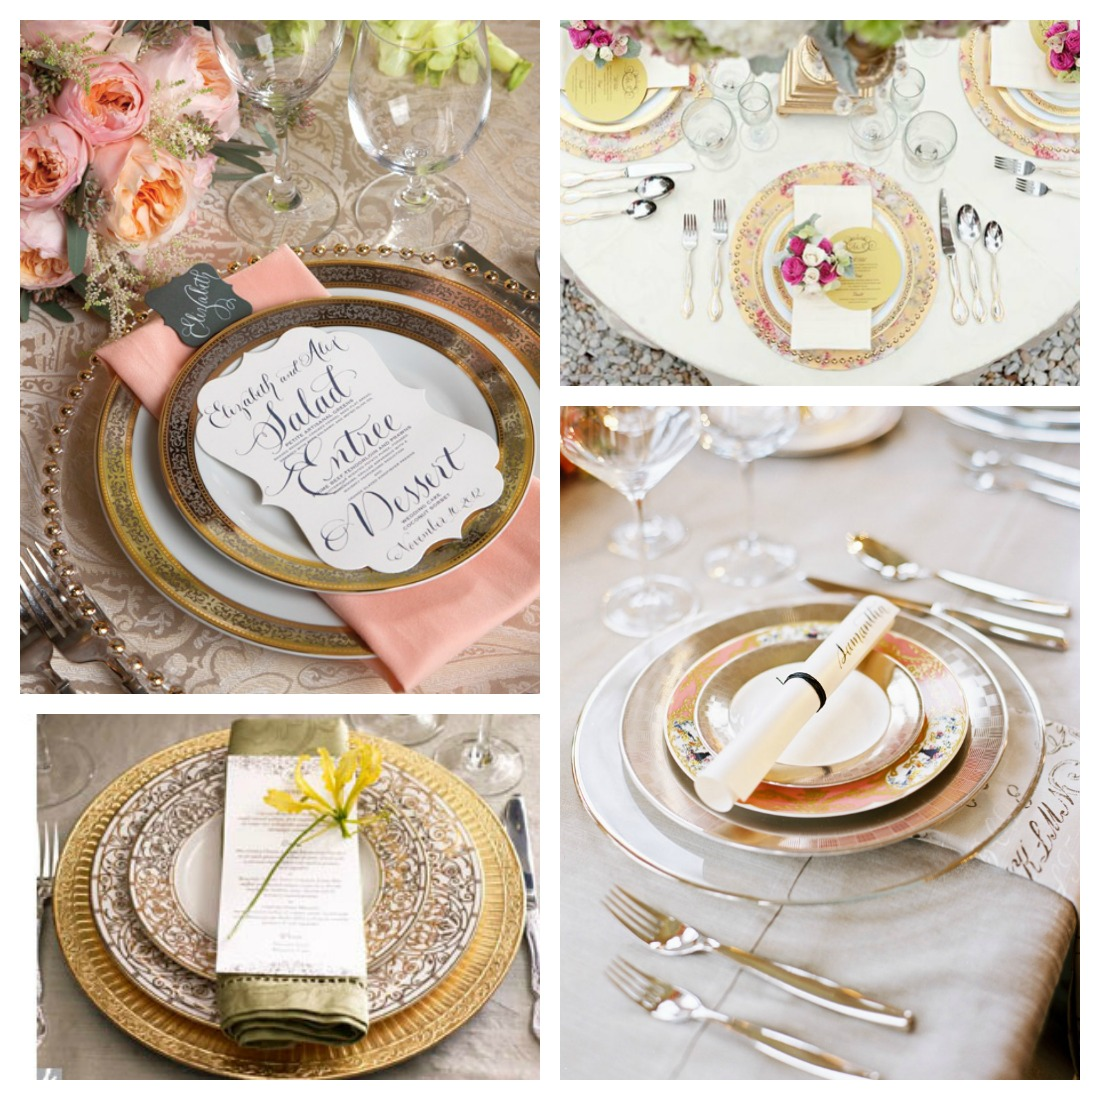 Wedding table setting design for Table setting design